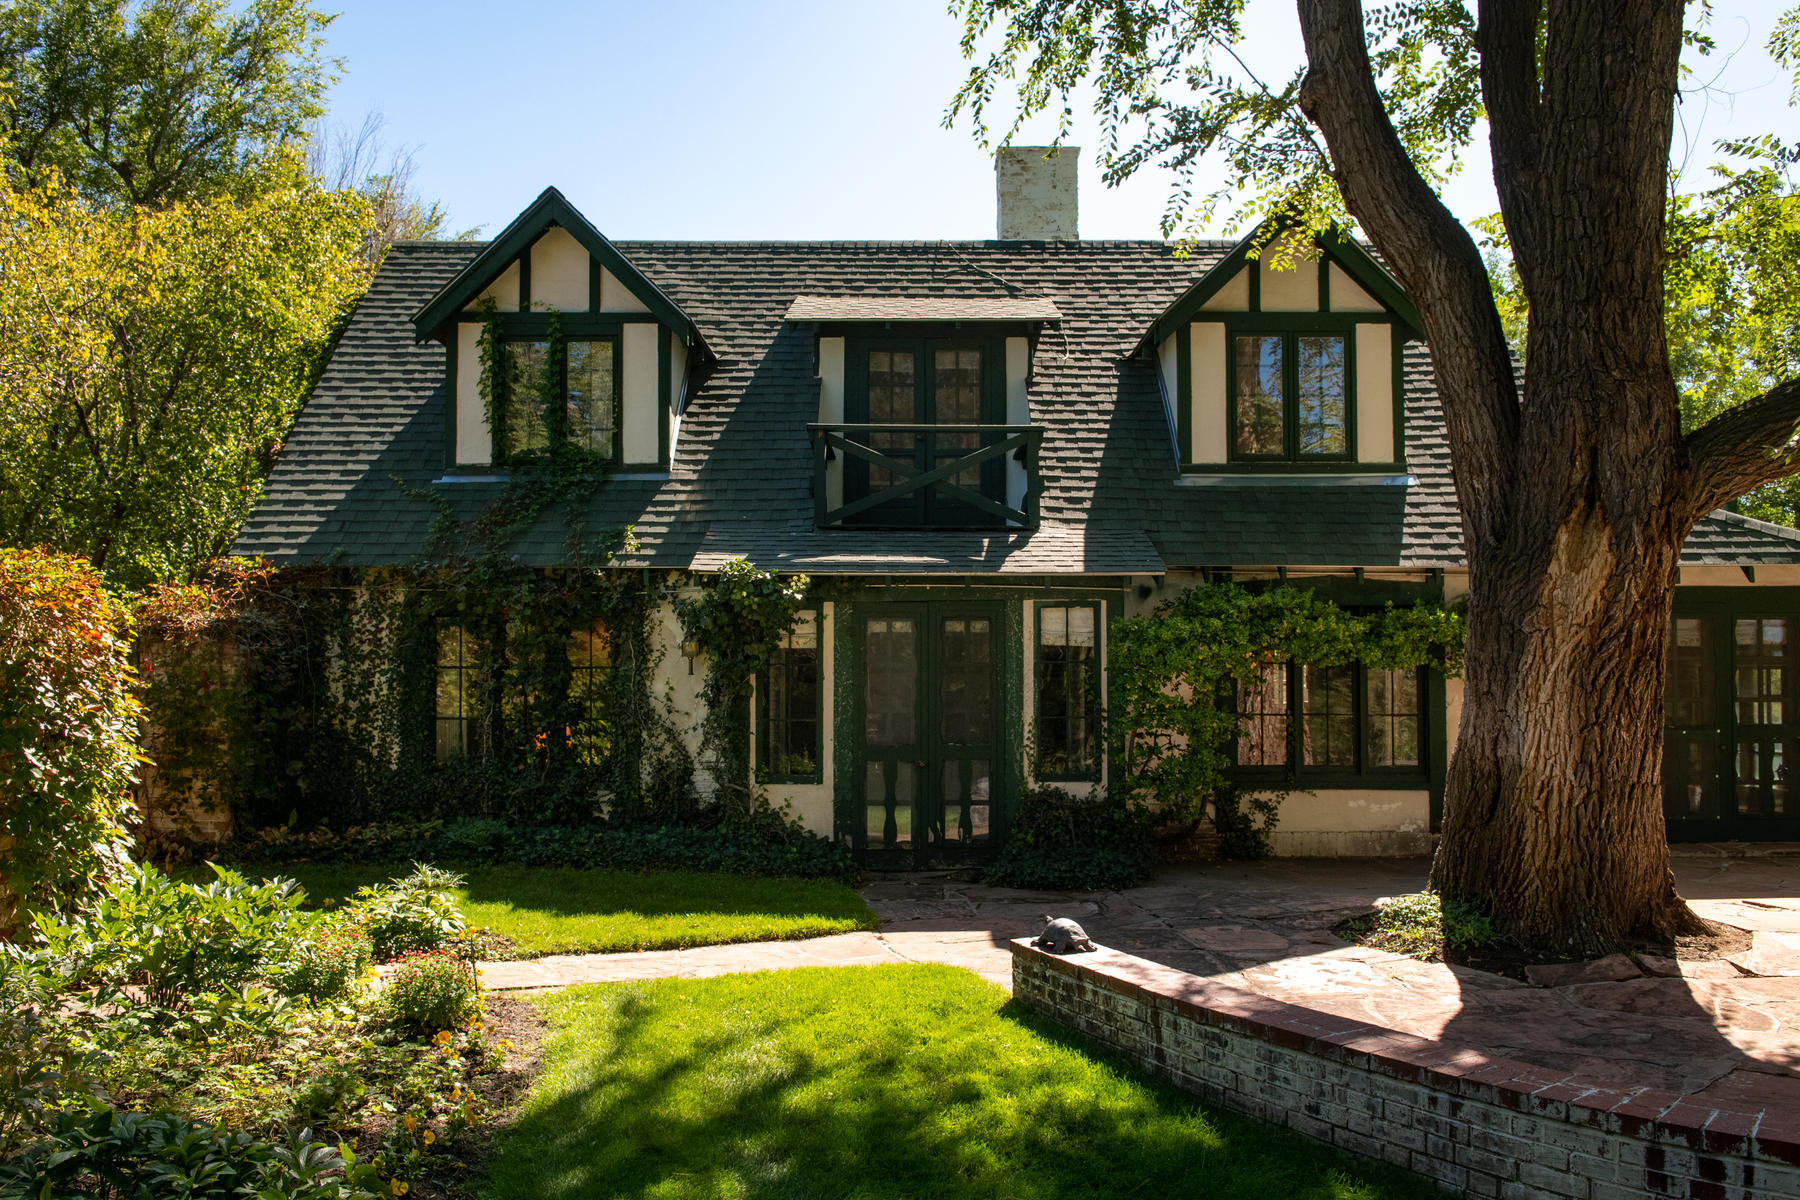 Single Family Homes for Active at Private & Charming Country Home Surrounded by Greenwood Village's Open Space 4500 E Belleview Avenue Greenwood Village, Colorado 80121 United States